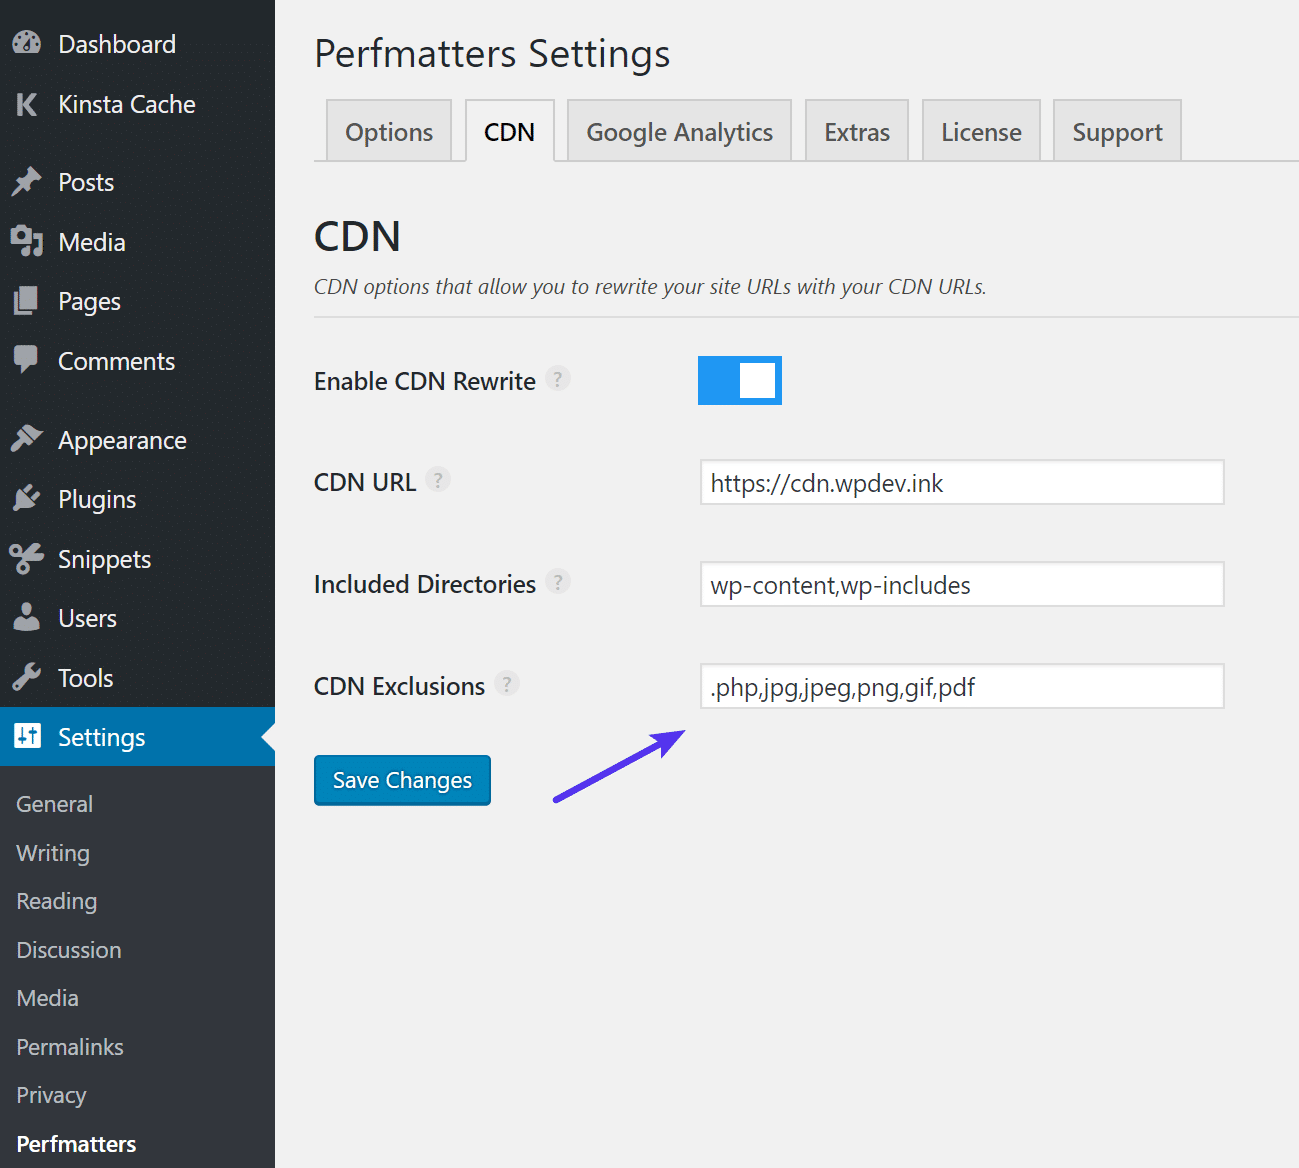 CDN exclusions in Perfmatters